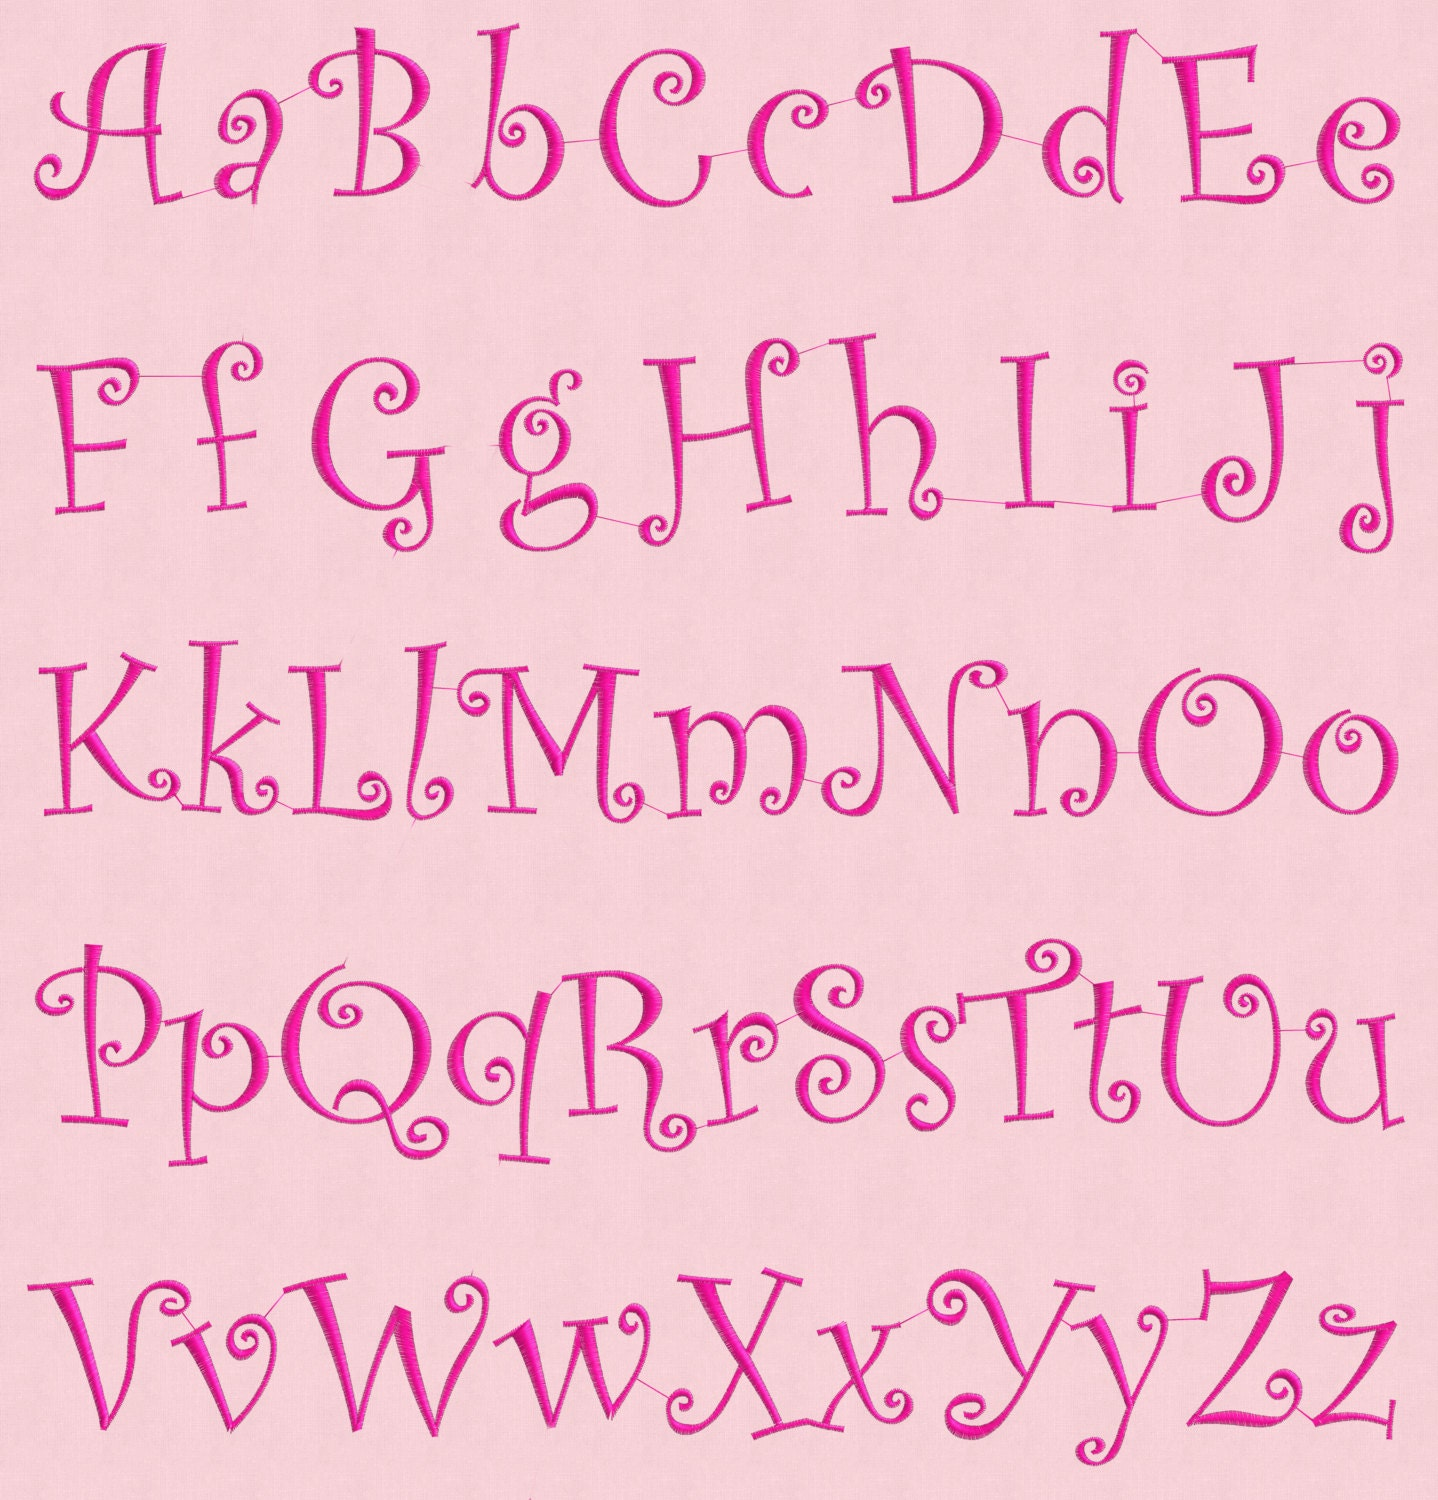 Embroidery design alphabet curly font letters digital